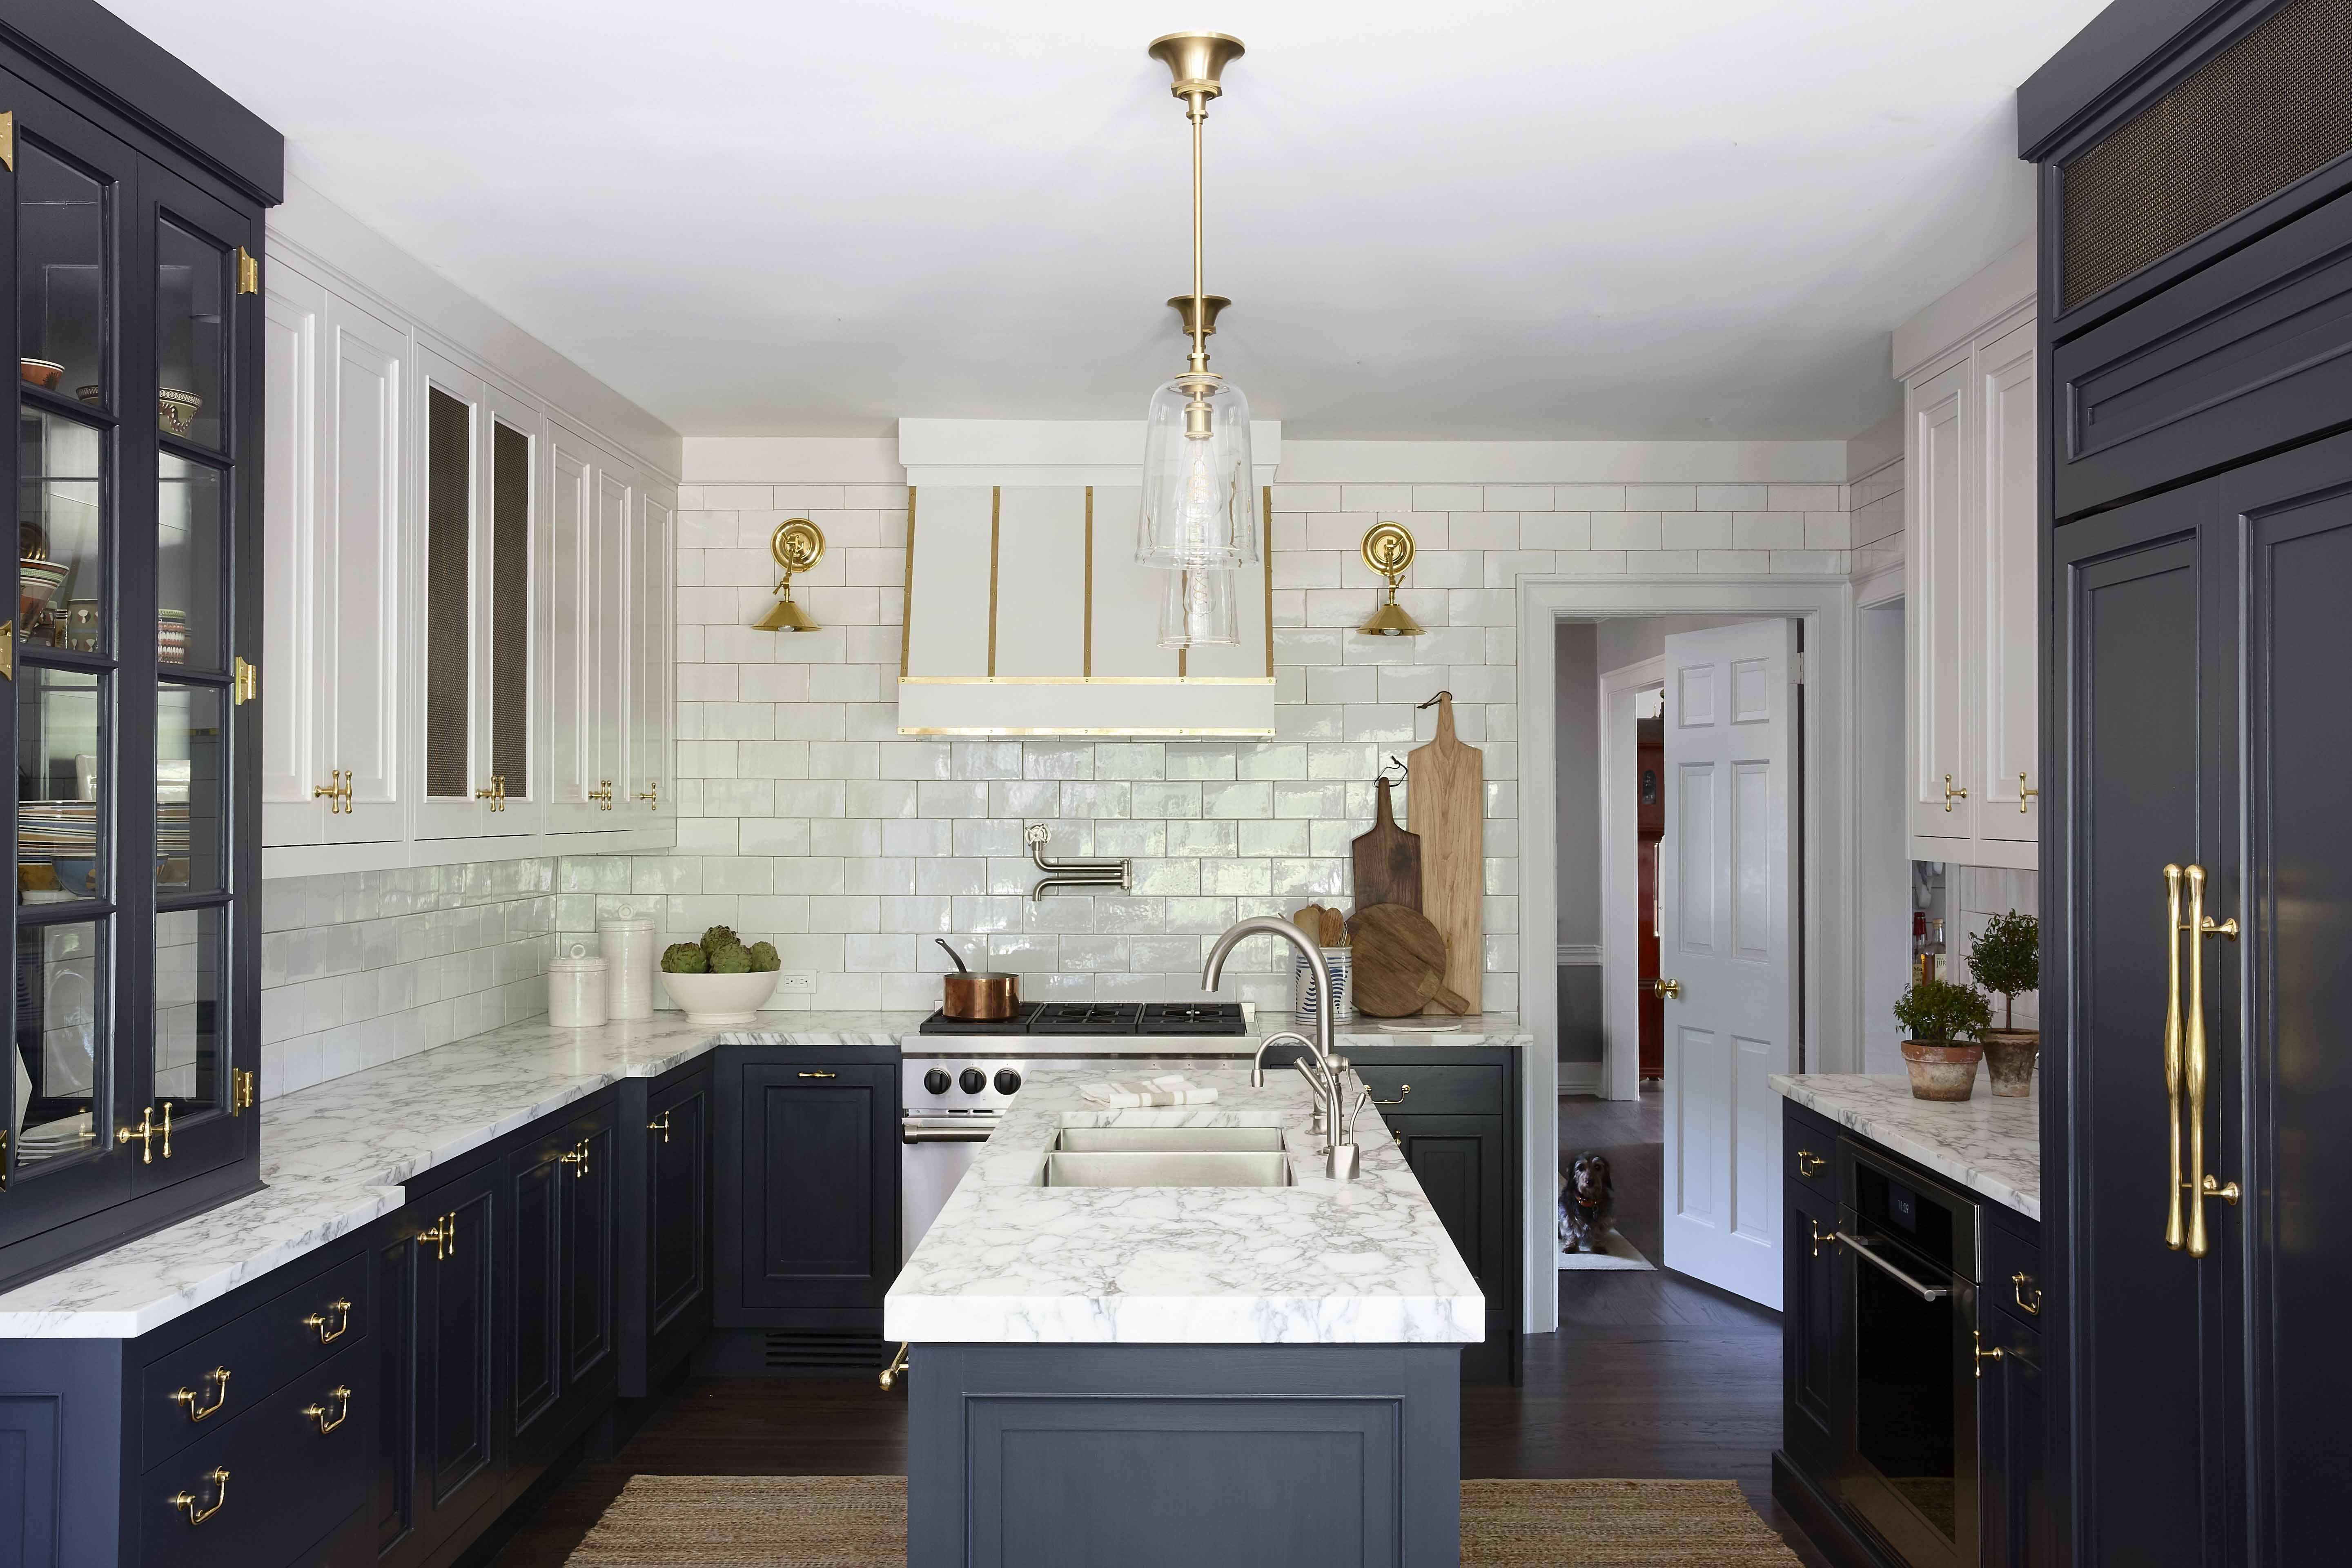 Best Kitchen Design Ideas For Small To Large Kitchens